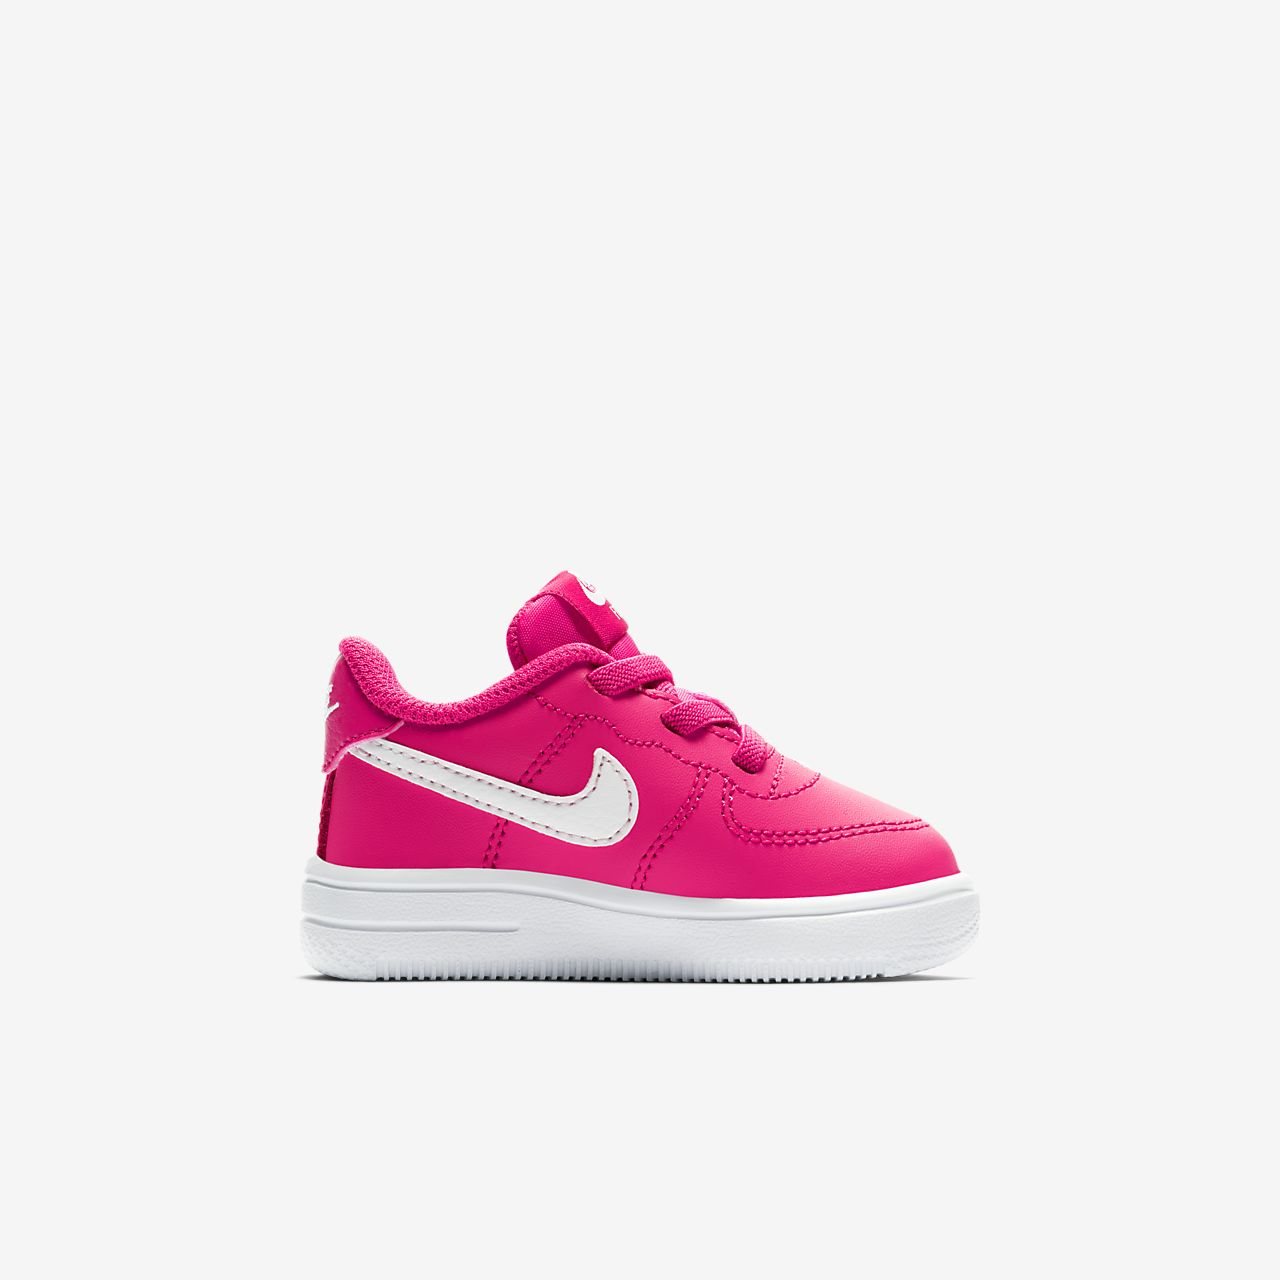 nike air force 1 mid scarpa bimbo piccolo